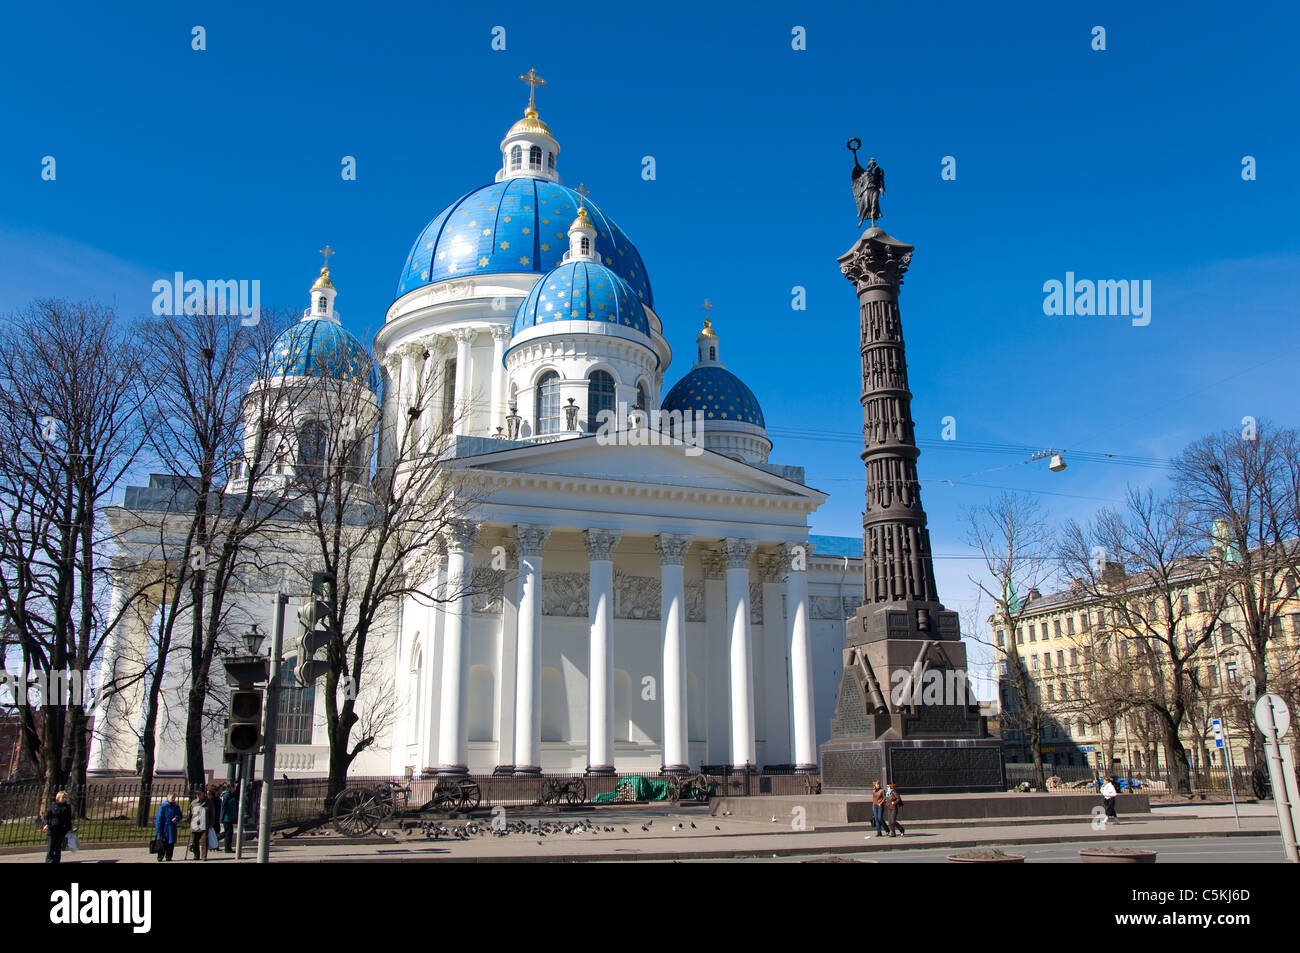 The Holy Trinity Cathedral, St Petersburg, Russia - Stock Image